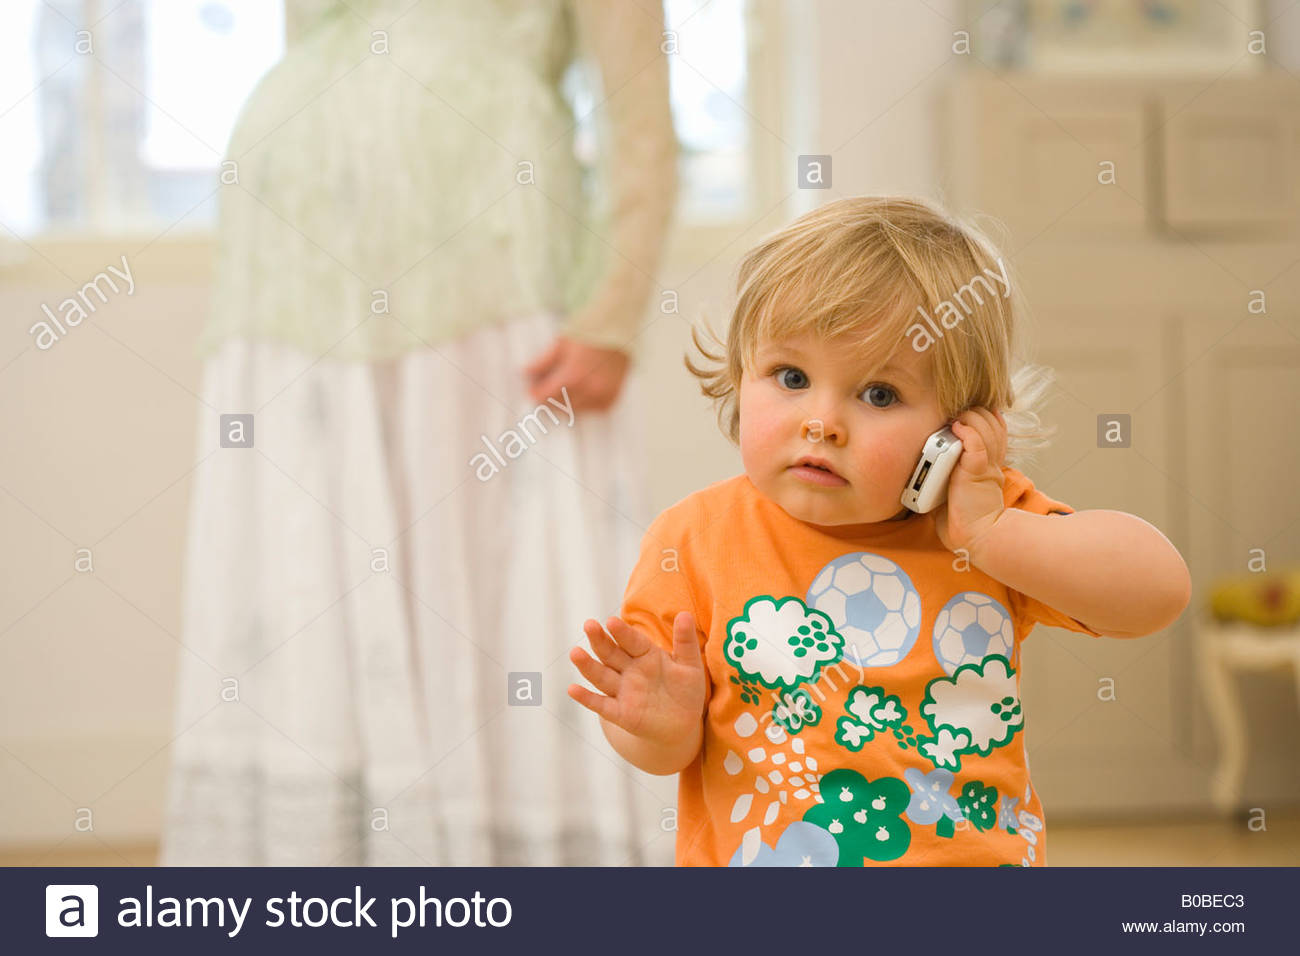 Male toddler 15-18 months using mobile phone, portrait, pregnant mother in background - Stock Image